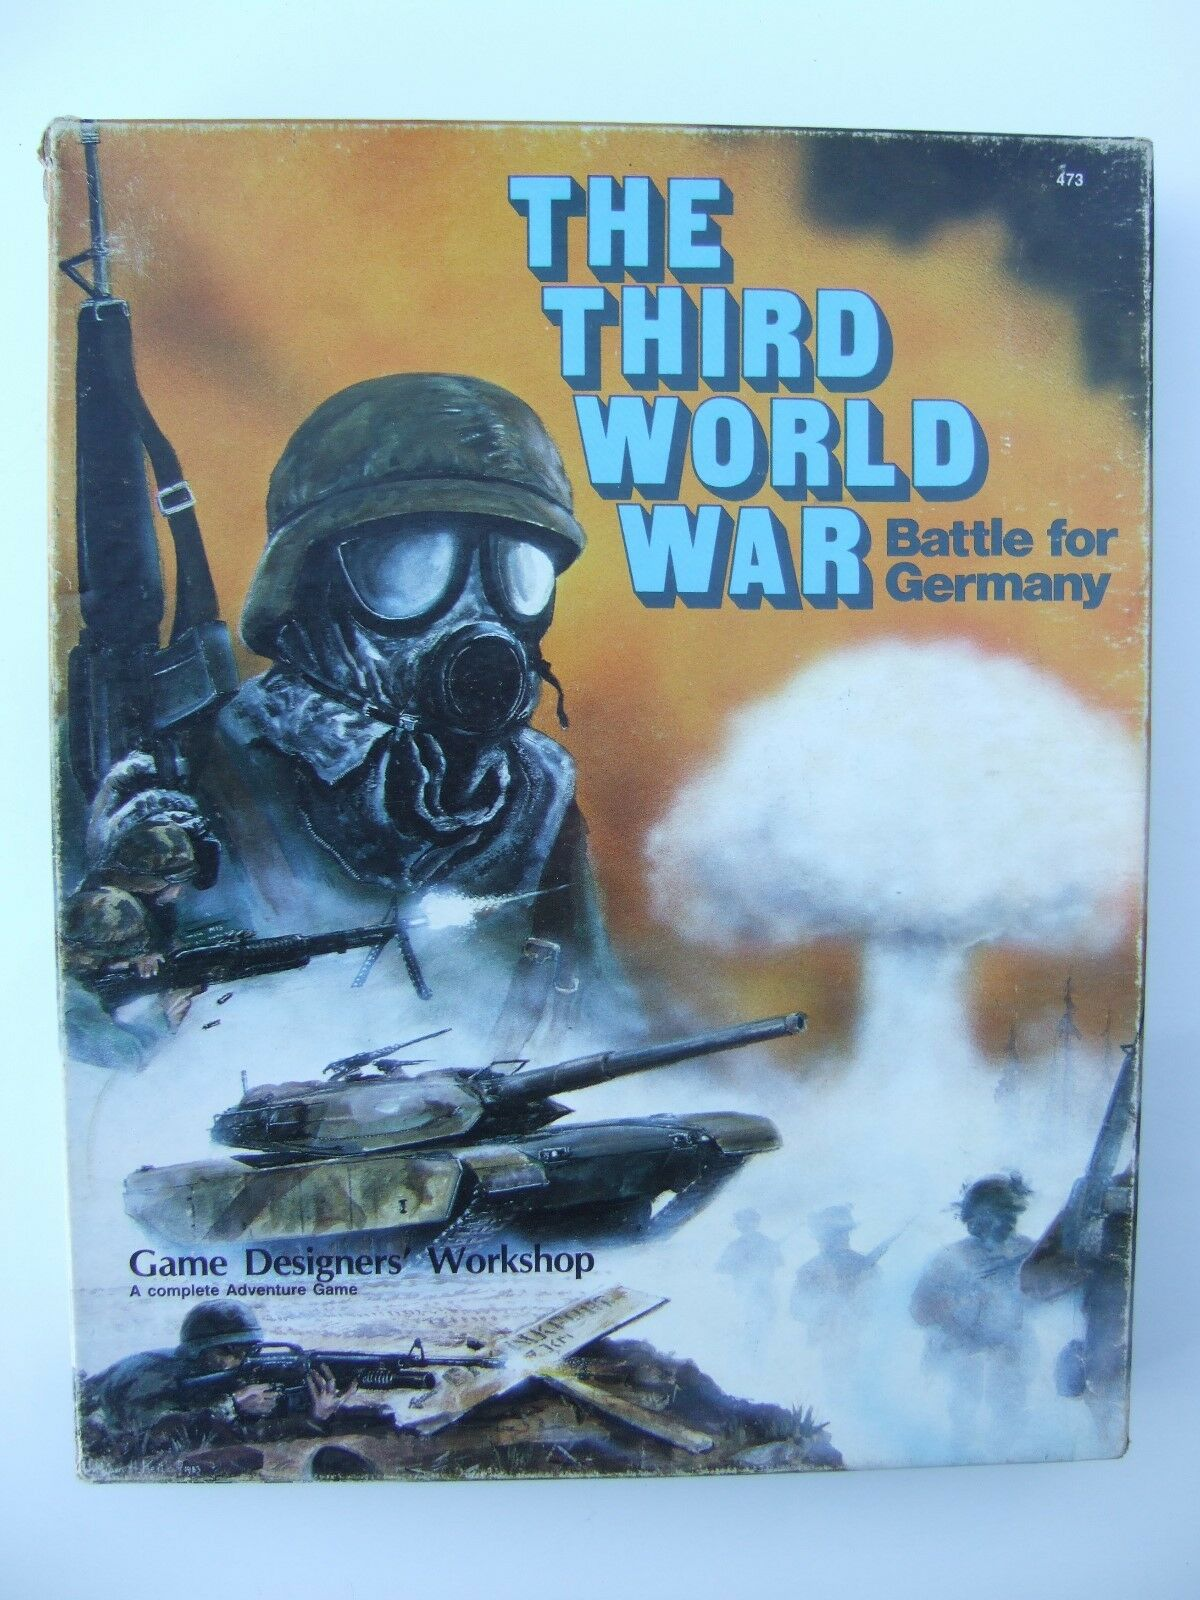 The Third World War Battle for Germany by GDW